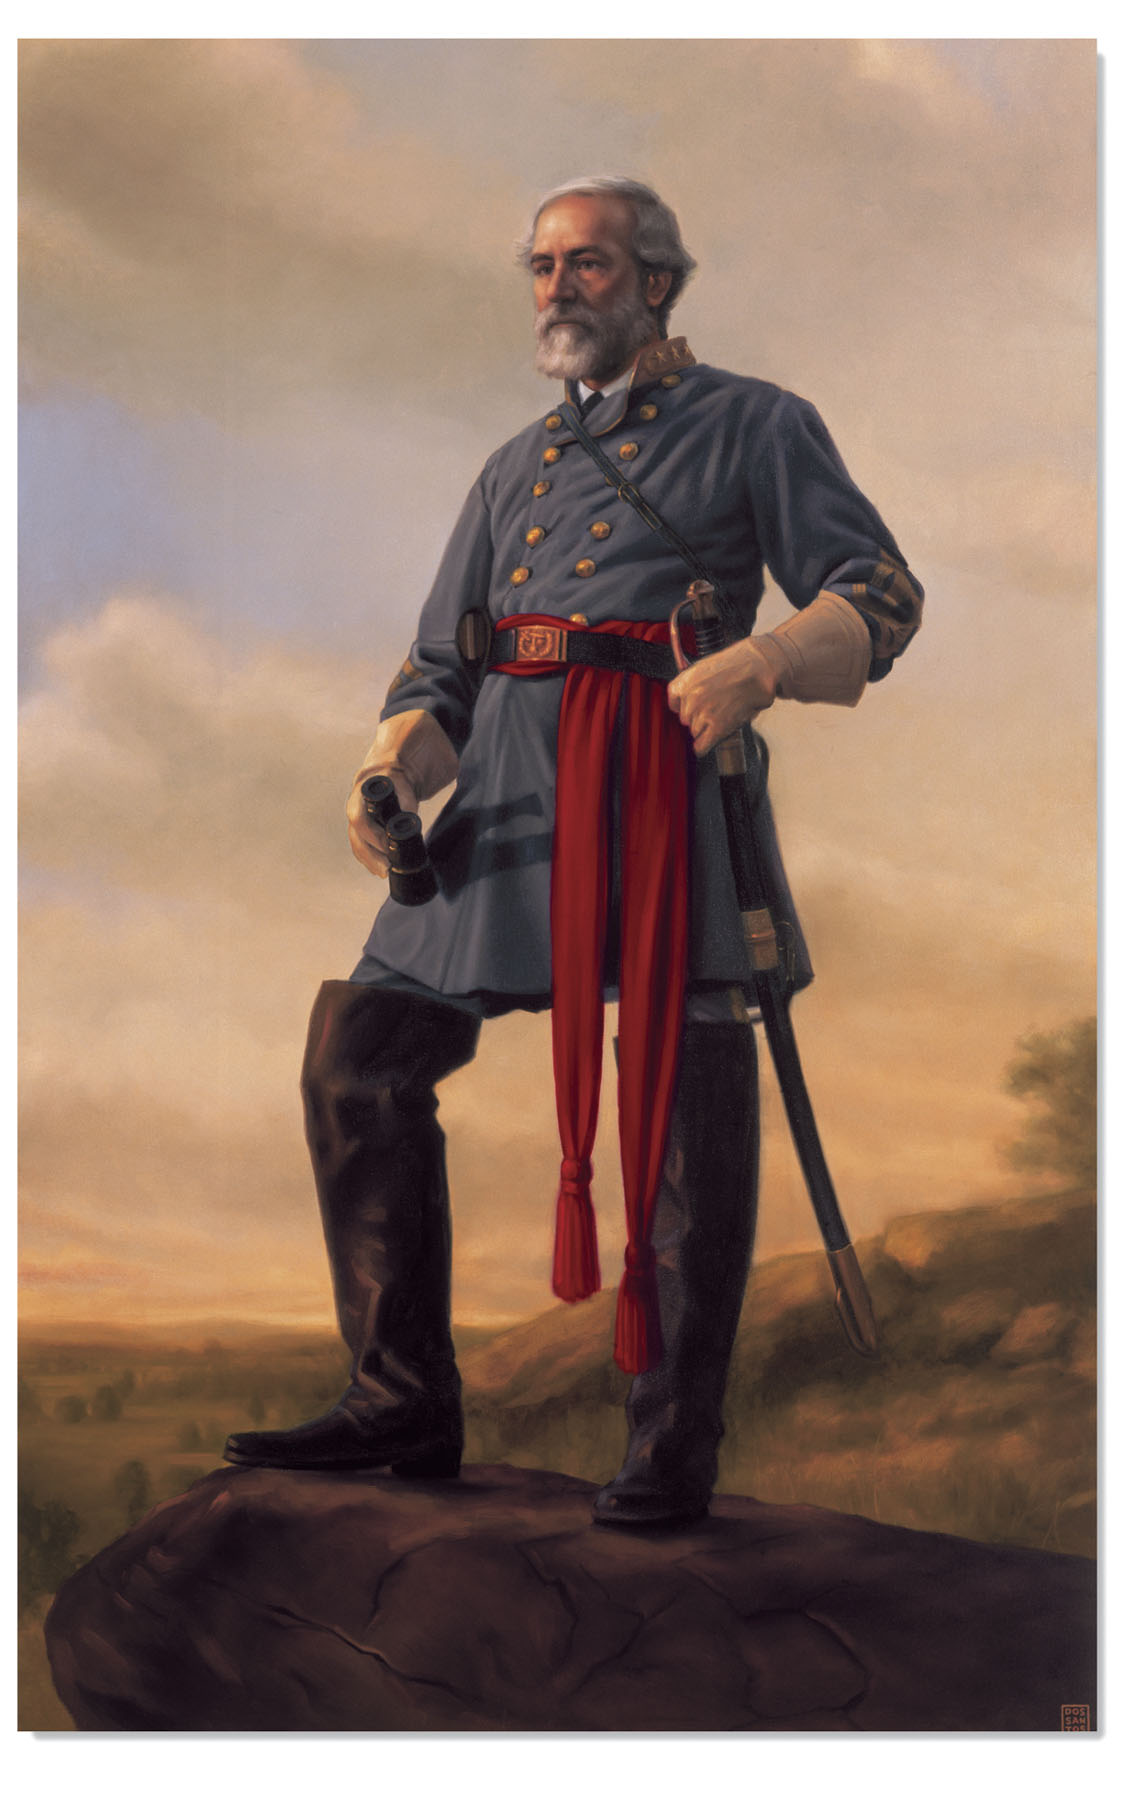 a biography of robert e lee a general of the confederate army in the american civil war Claim between the end of the civil war and his death, former confederate general robert e lee expressed opposition to the building of confederate monuments.